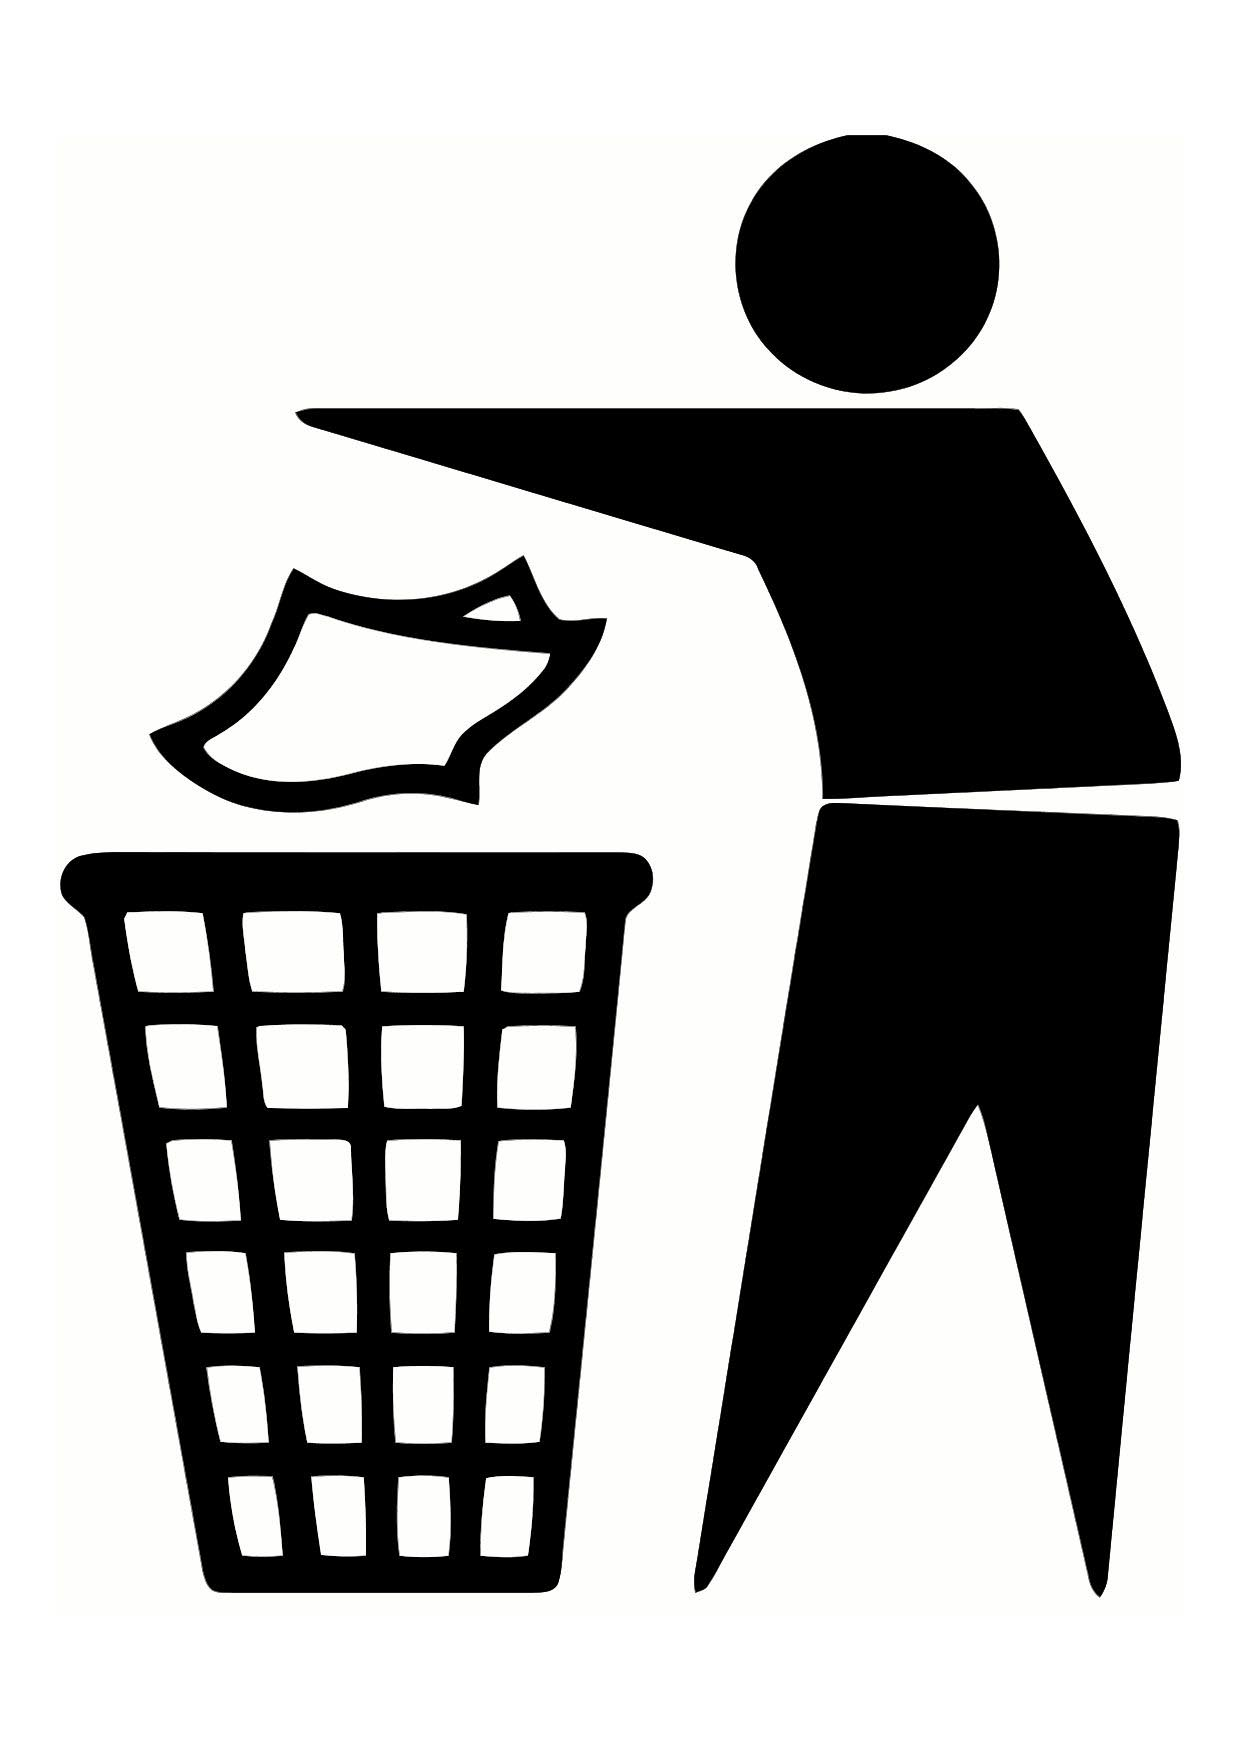 Free Trash Sign, Download Free Clip Art, Free Clip Art on.